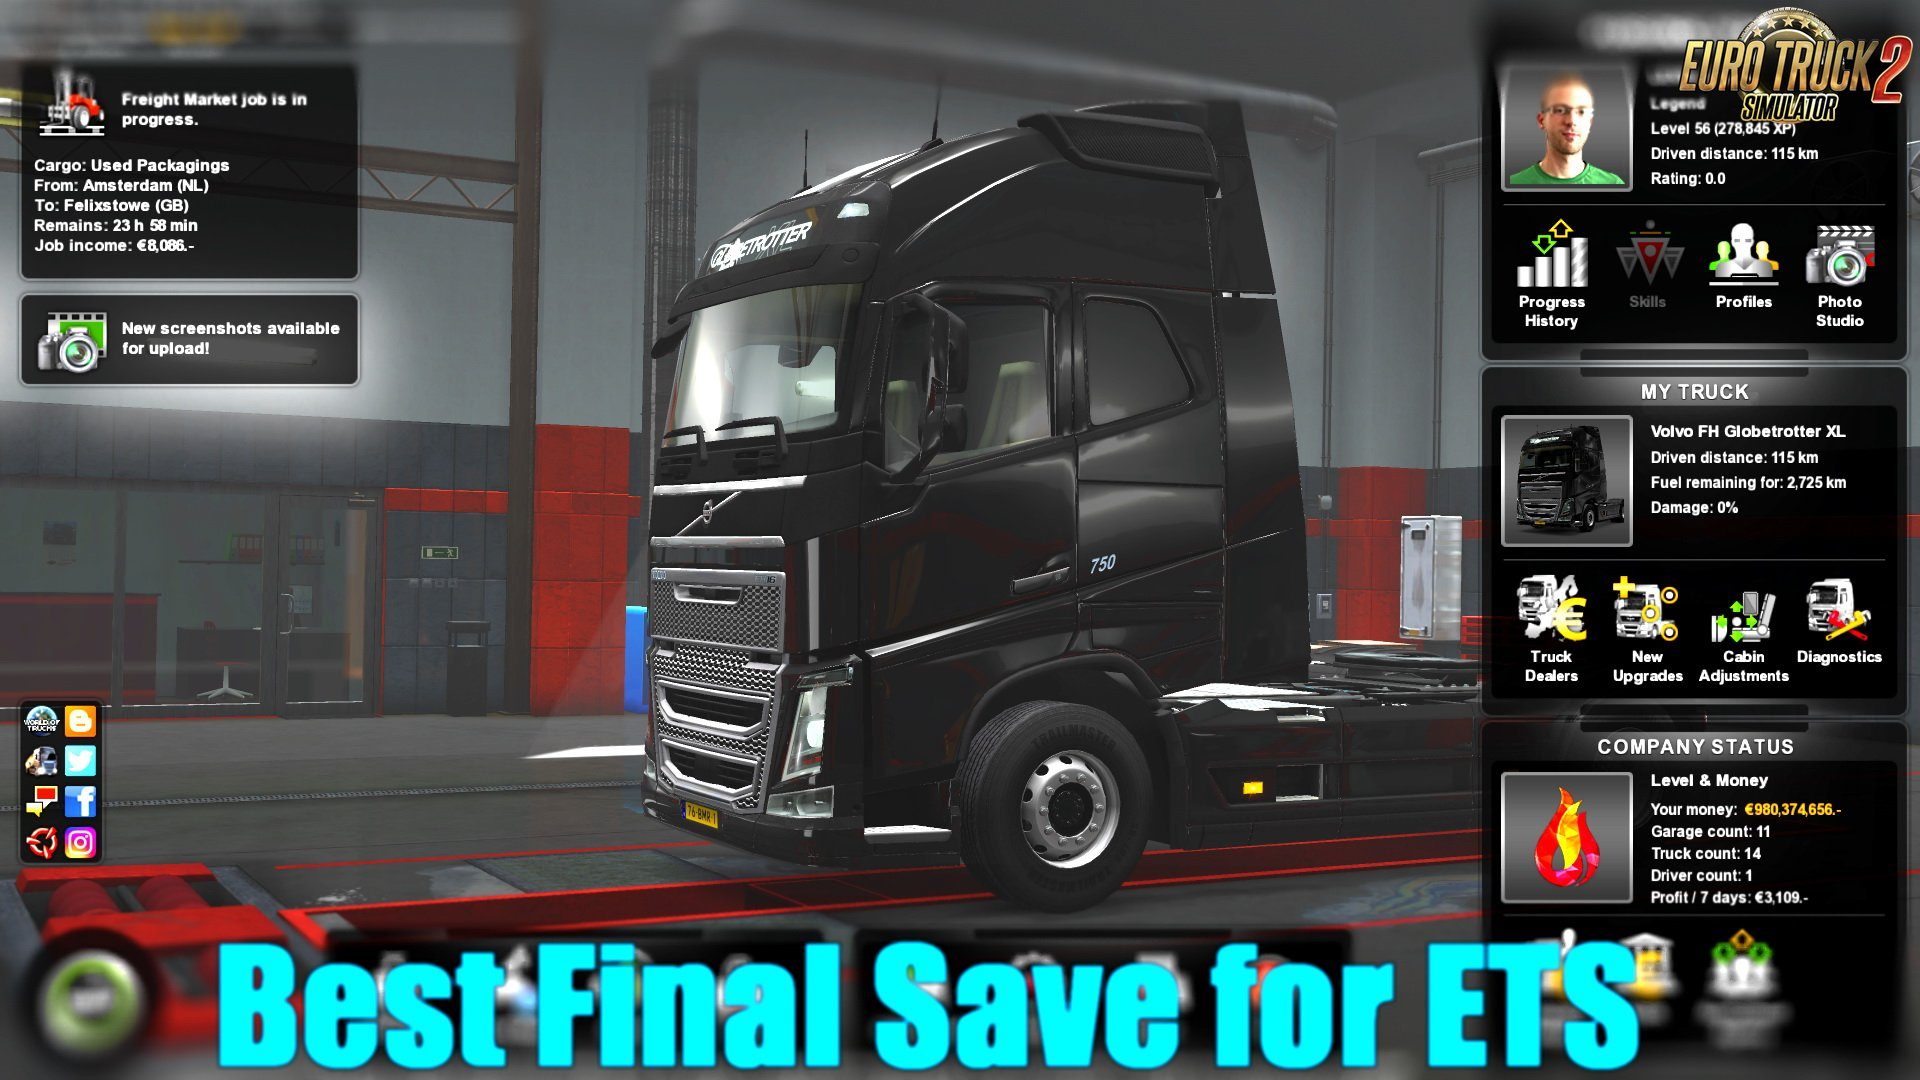 Best Final Save for ETS v1.0 by Denrus (1.30.x)